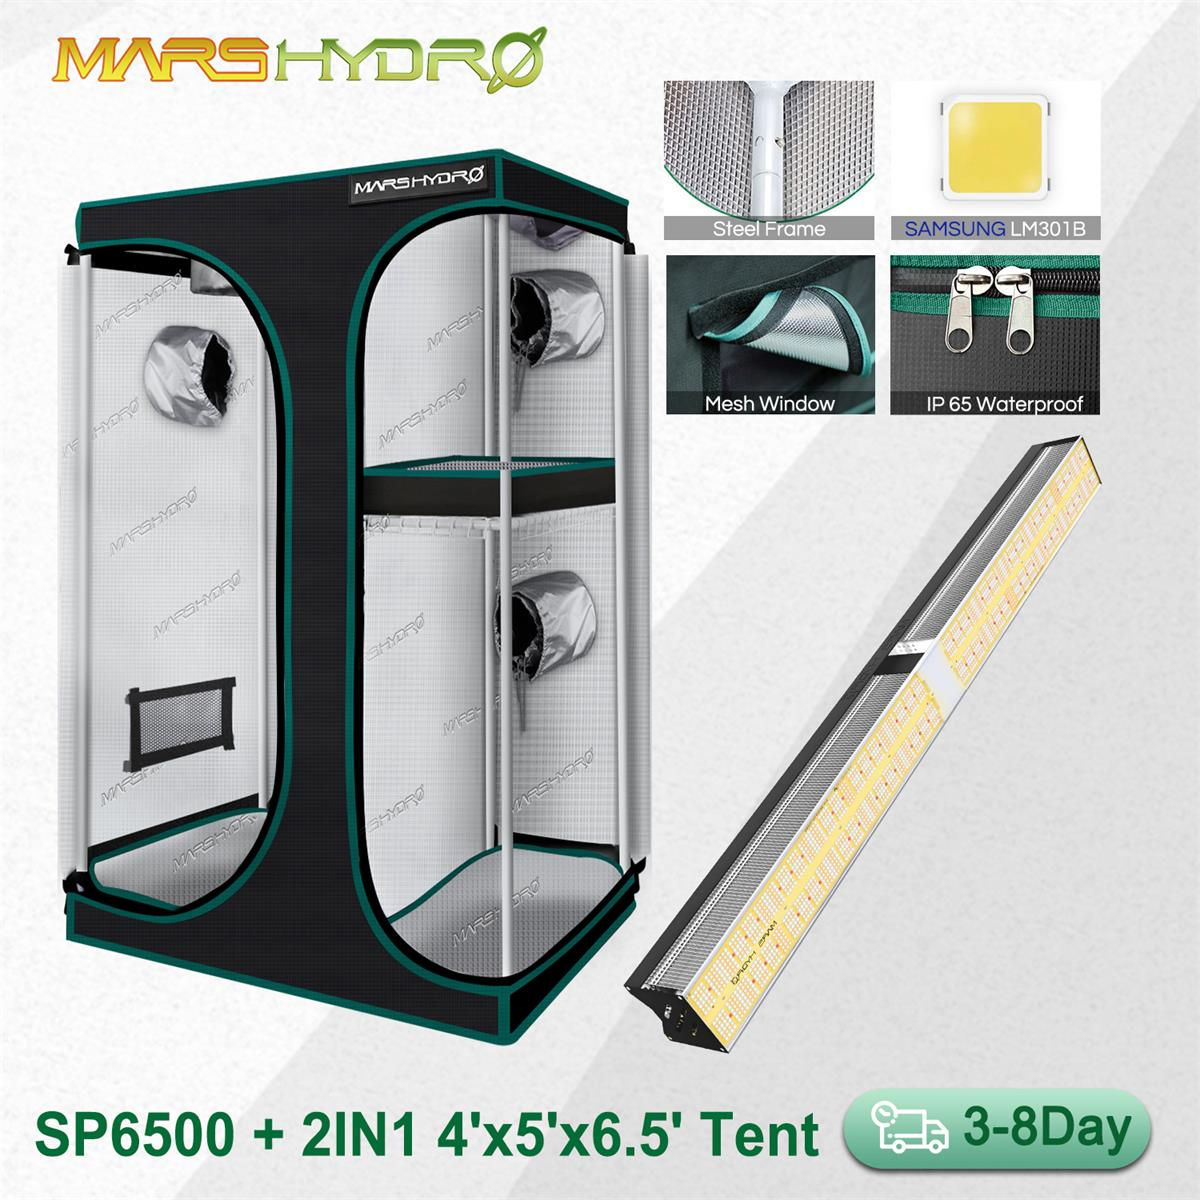 Mars Hydro SP 6500  2IN1 150x120CM Grow Tent Led Grow Light SAMSUNG LM301B Dimmable Full Spectrum Phytolamp for Indoor Plants